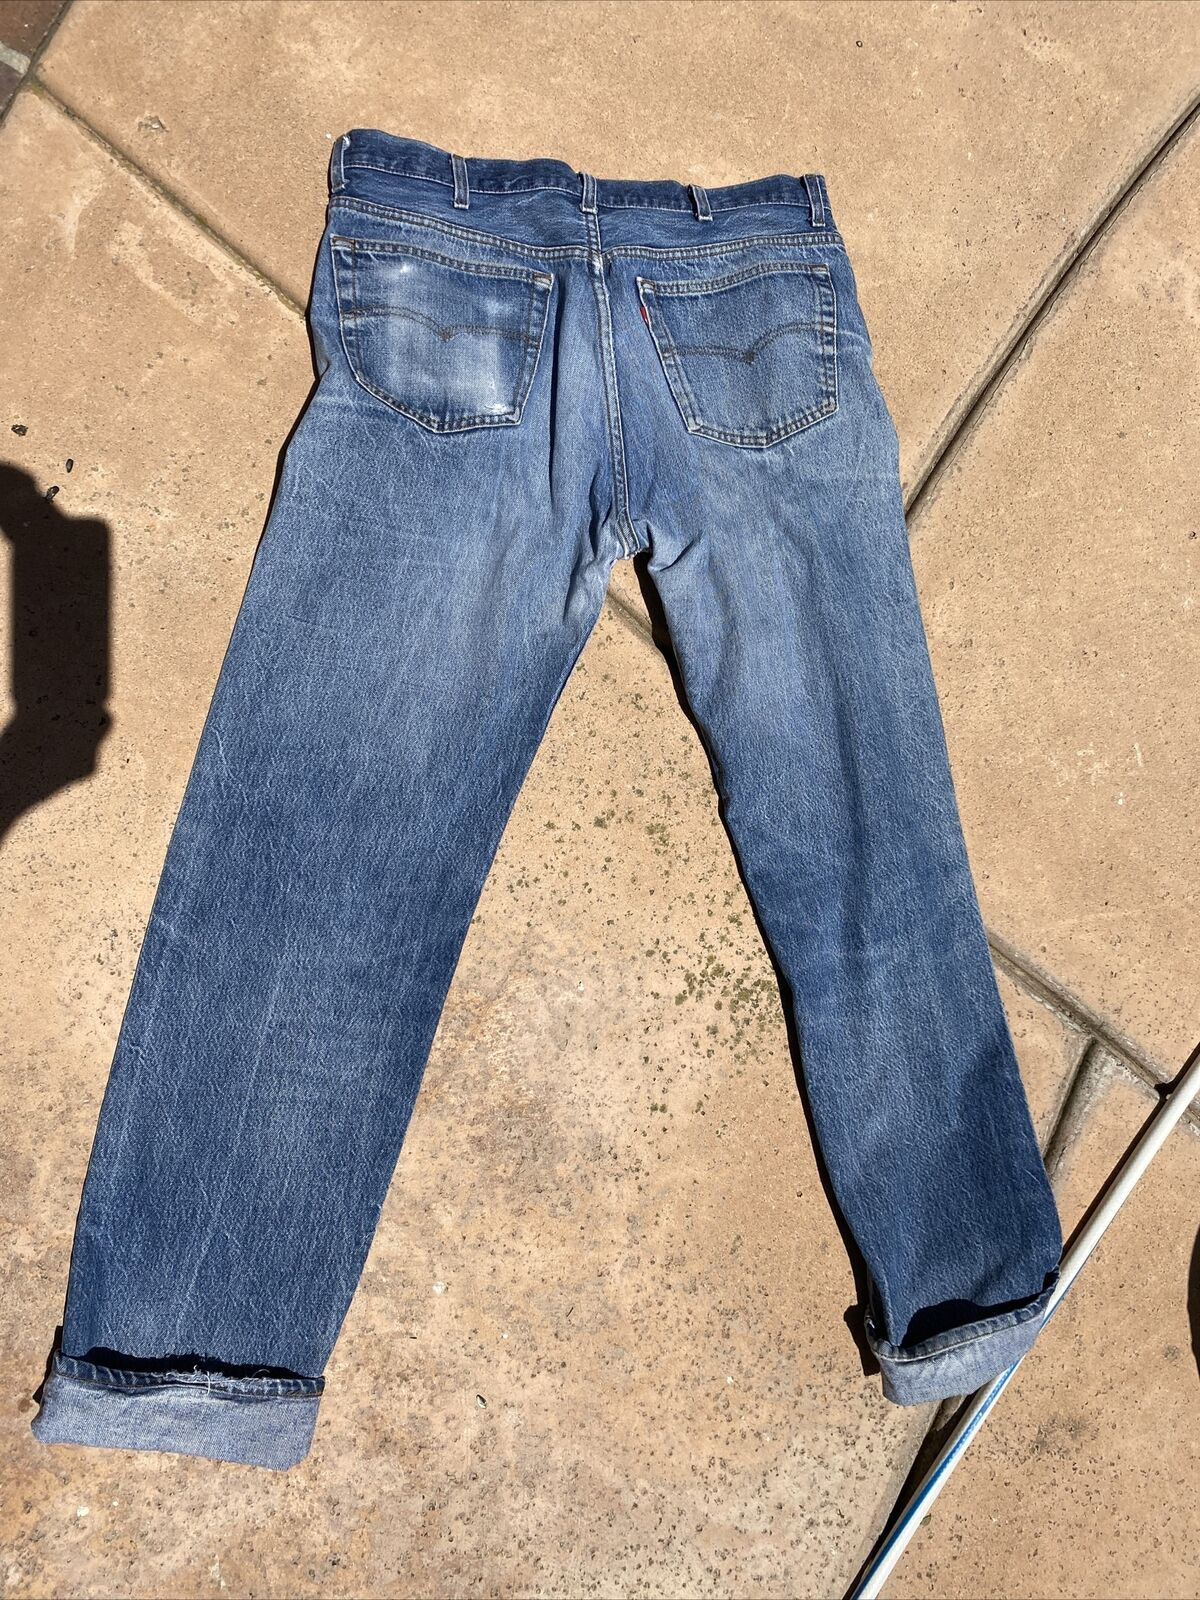 vintage levis jeans 501 made in usa  - image 4